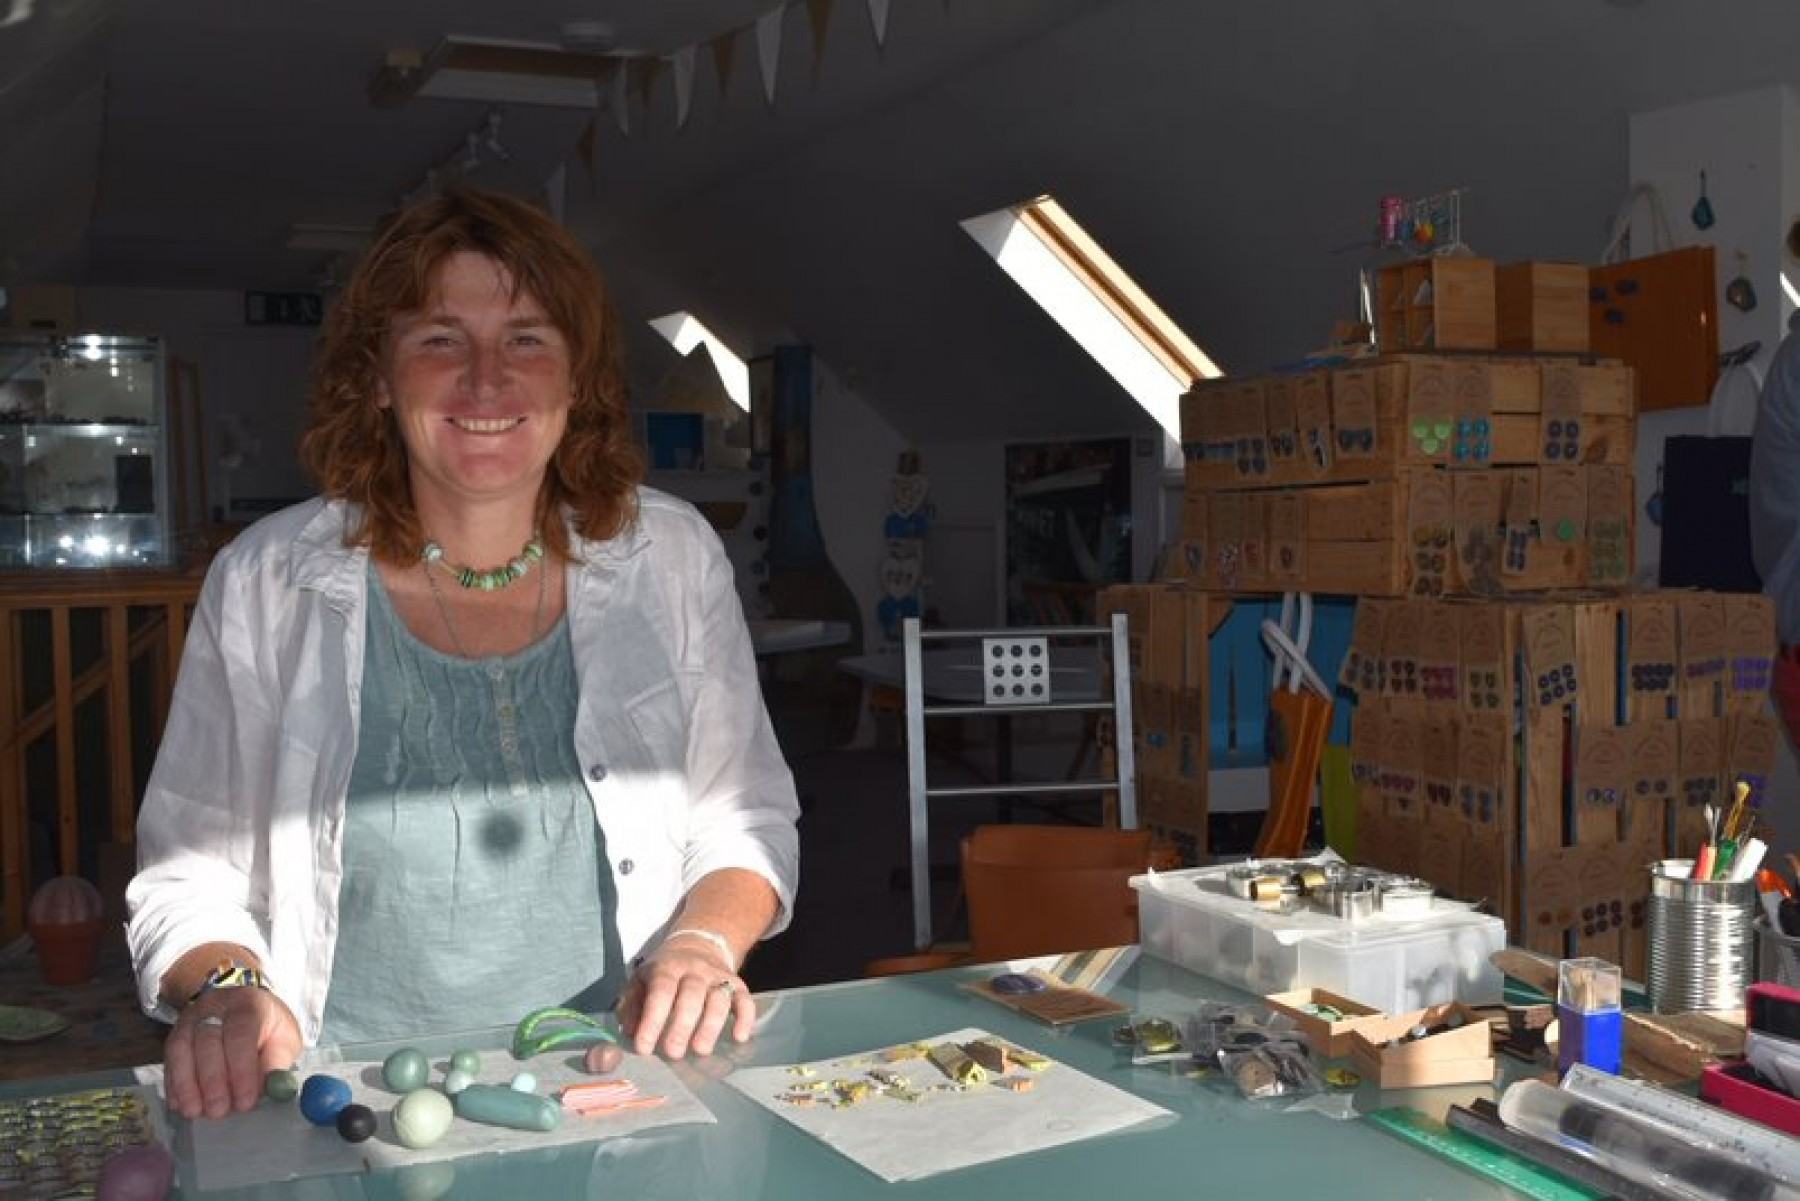 Emma Kate in her studio